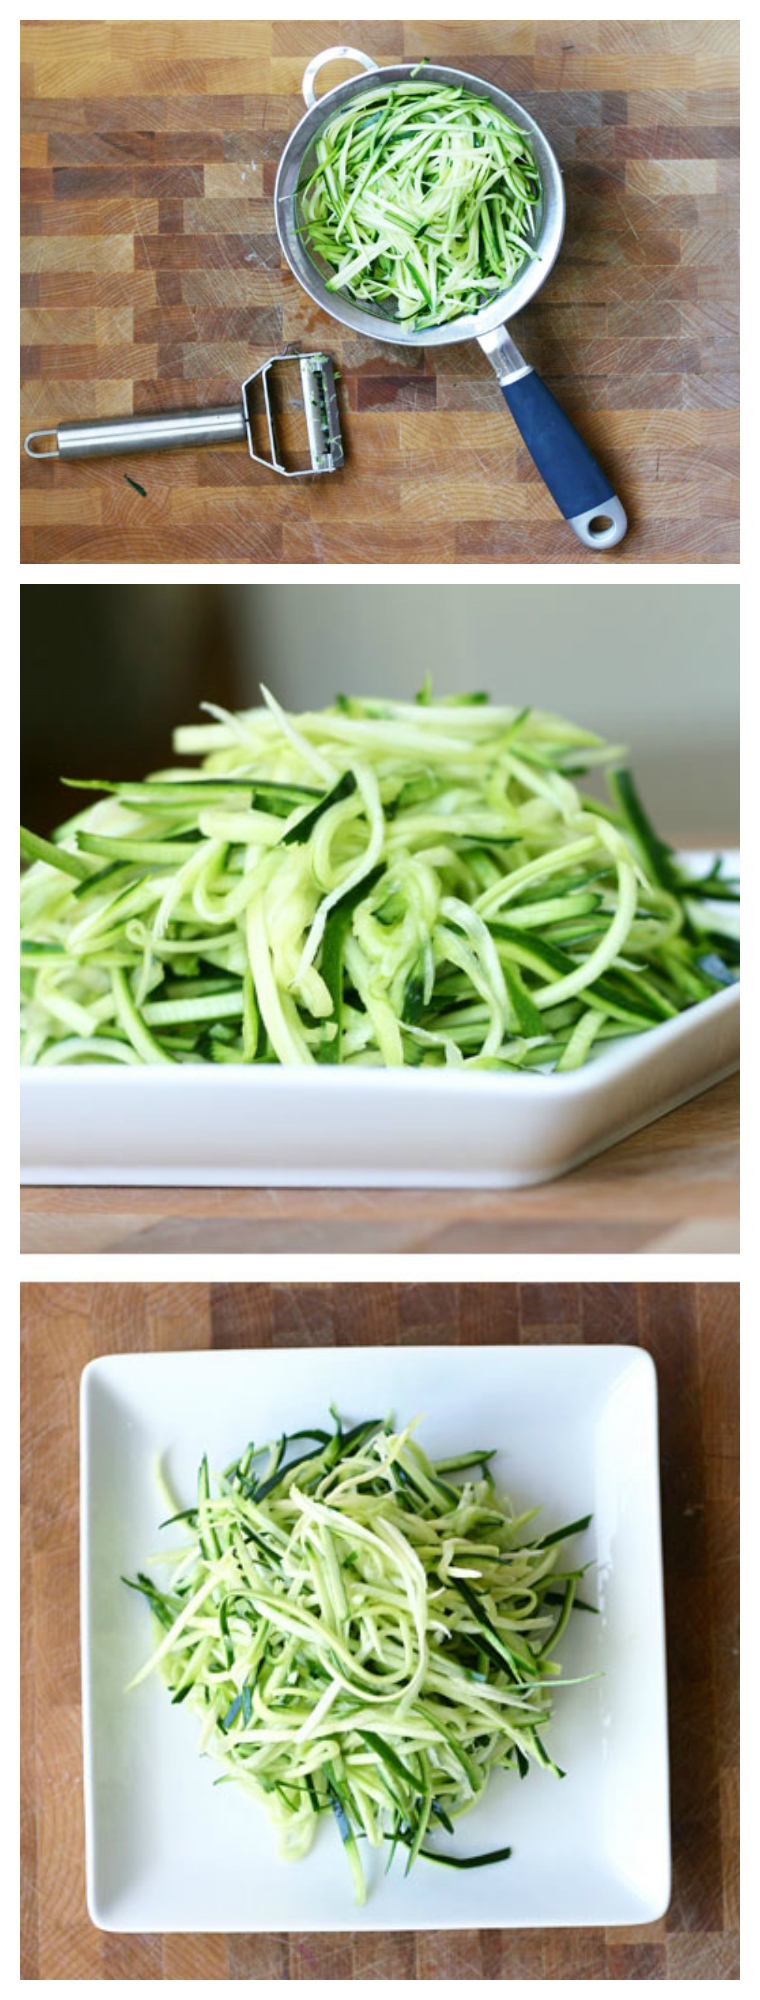 How to make Zucchini Noodles without a spiralizer. These are fast, easy, and naturally gluten-free!